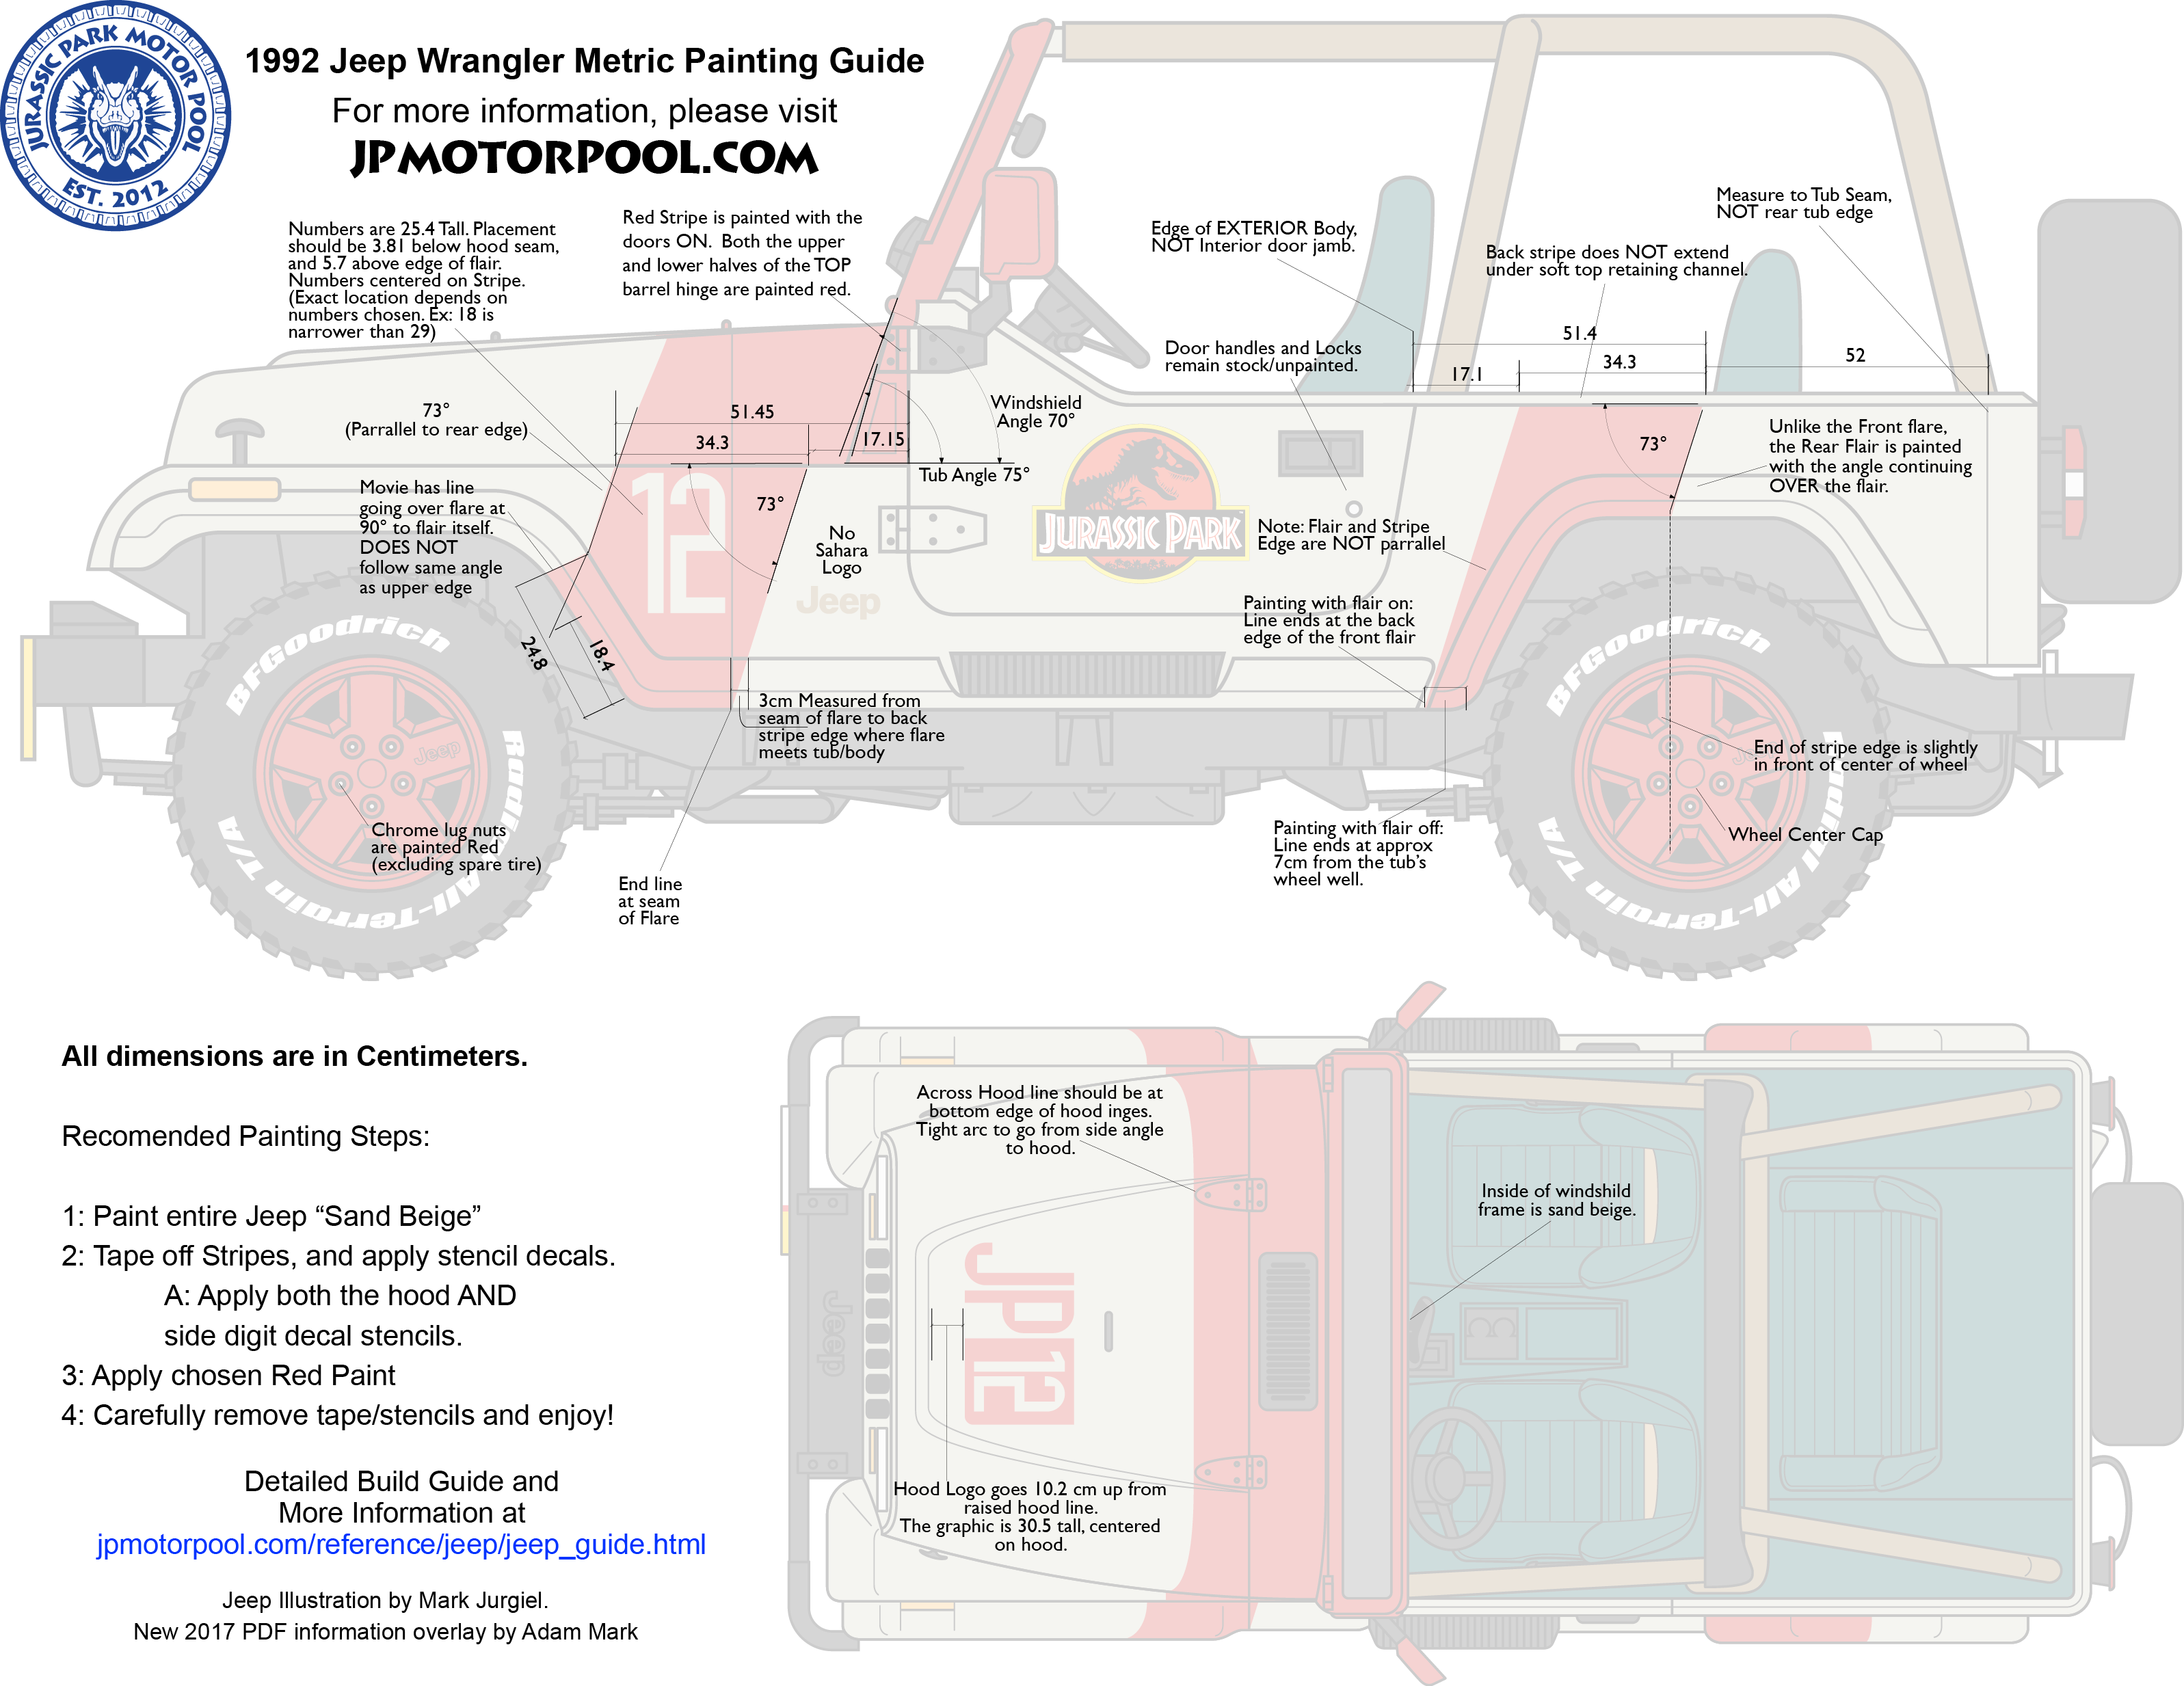 Reference Jeep Wrangler Guide Jurassic Park Motor Pool 89 Dash Wiring Harness Download This